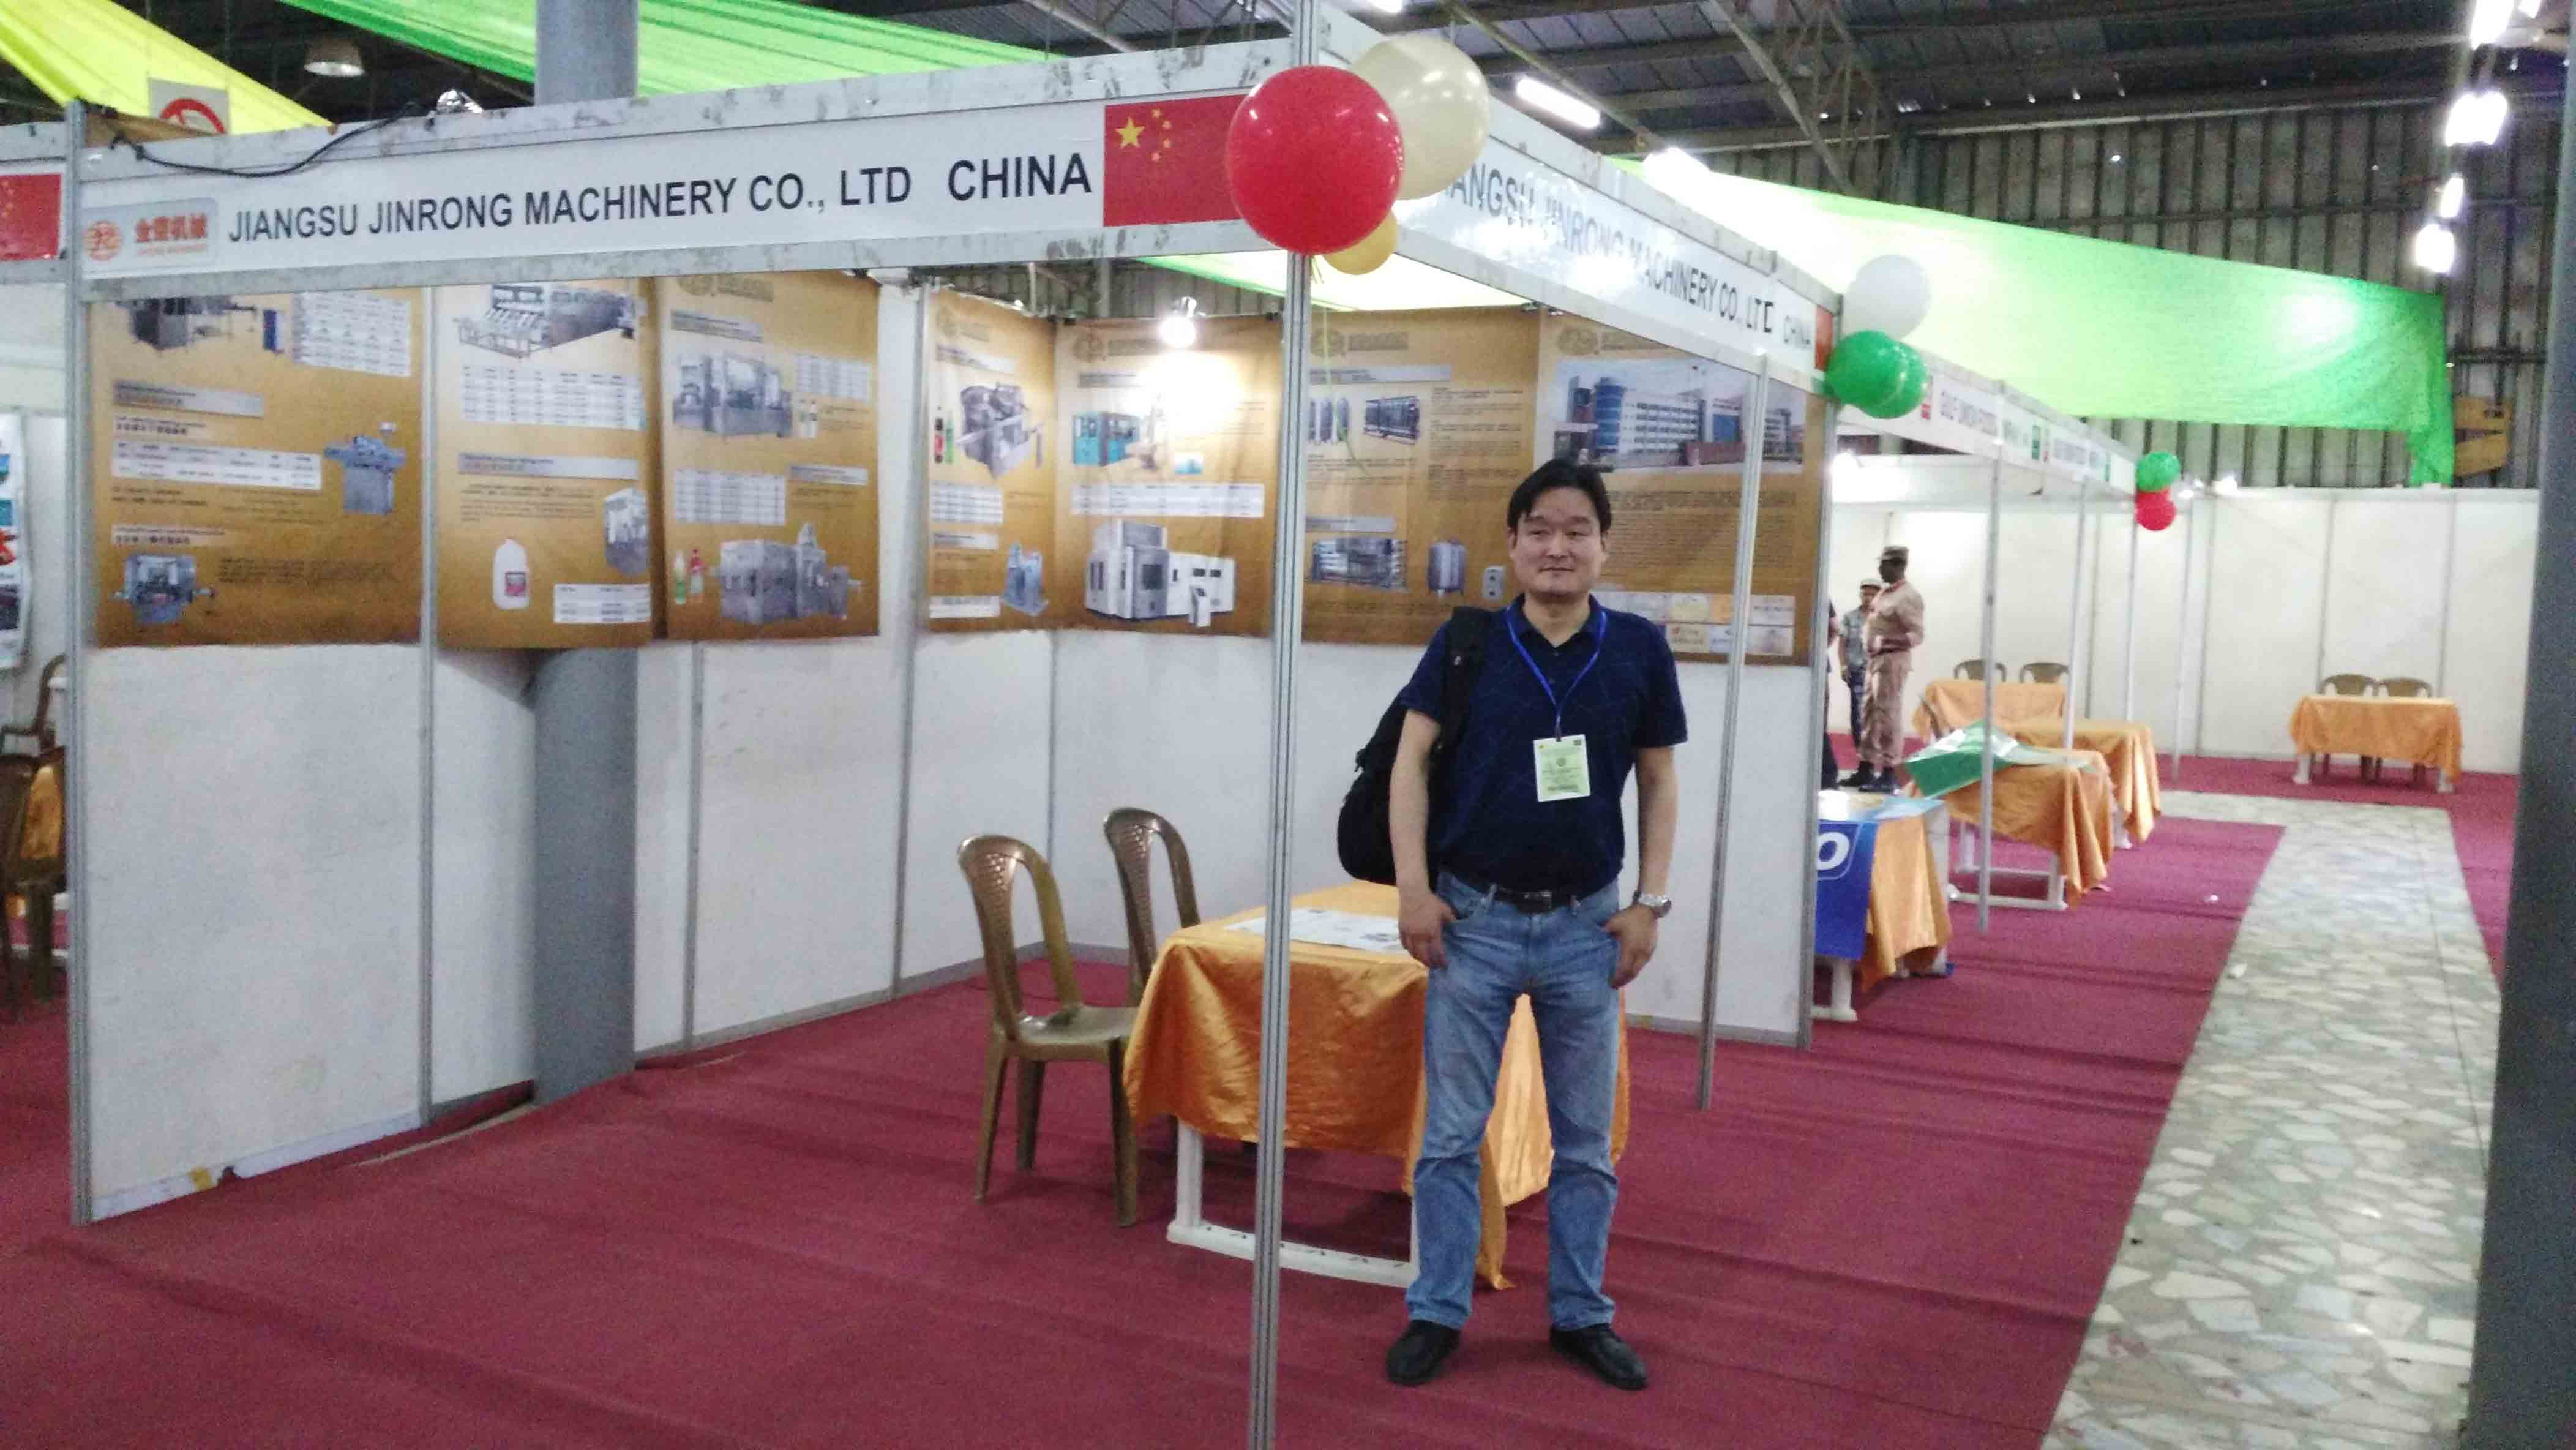 AGRICULTURE & FOOD INTERNATIONAL EXHIBITION